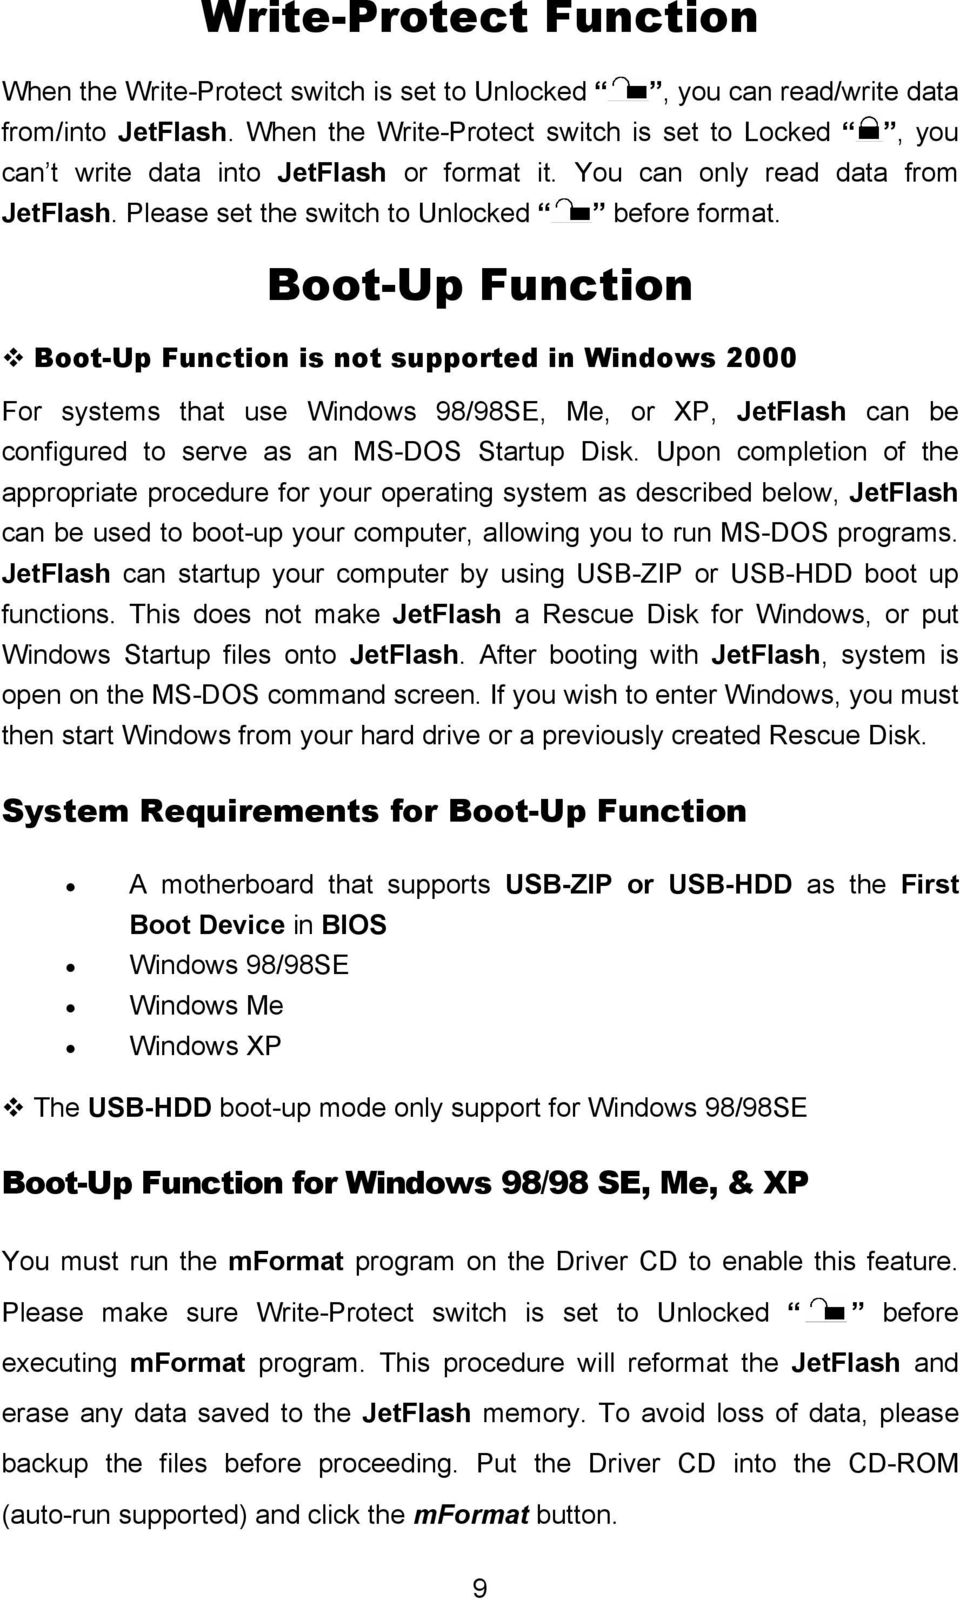 Boot-Up Function Boot-Up Function is not supported in Windows 2000 For systems that use Windows 98/98SE, Me, or XP, JetFlash can be configured to serve as an MS-DOS Startup Disk.